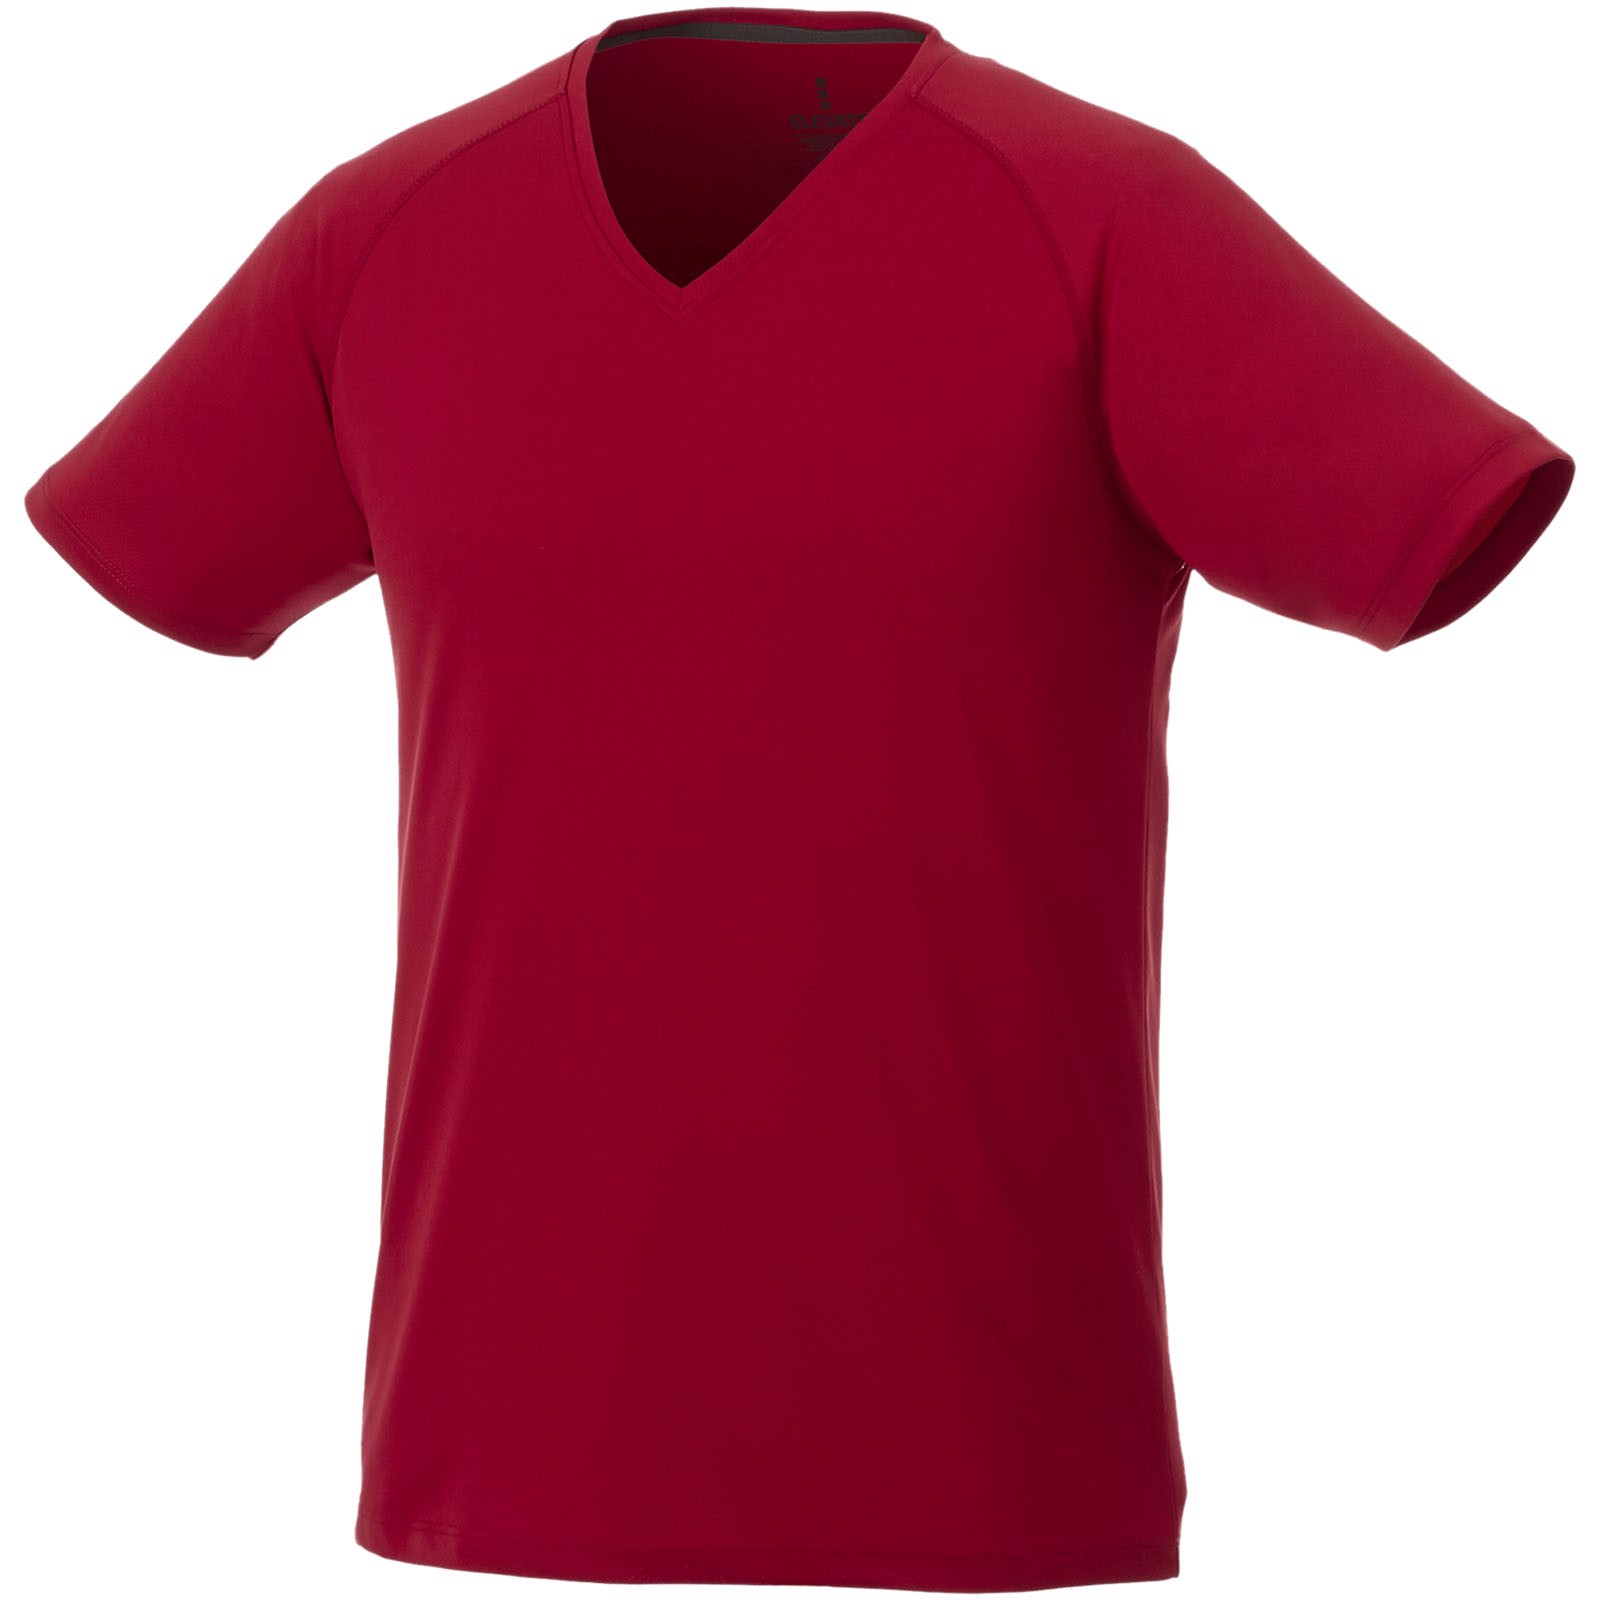 Amery short sleeve men's cool fit v-neck t-shirt - Red / XS